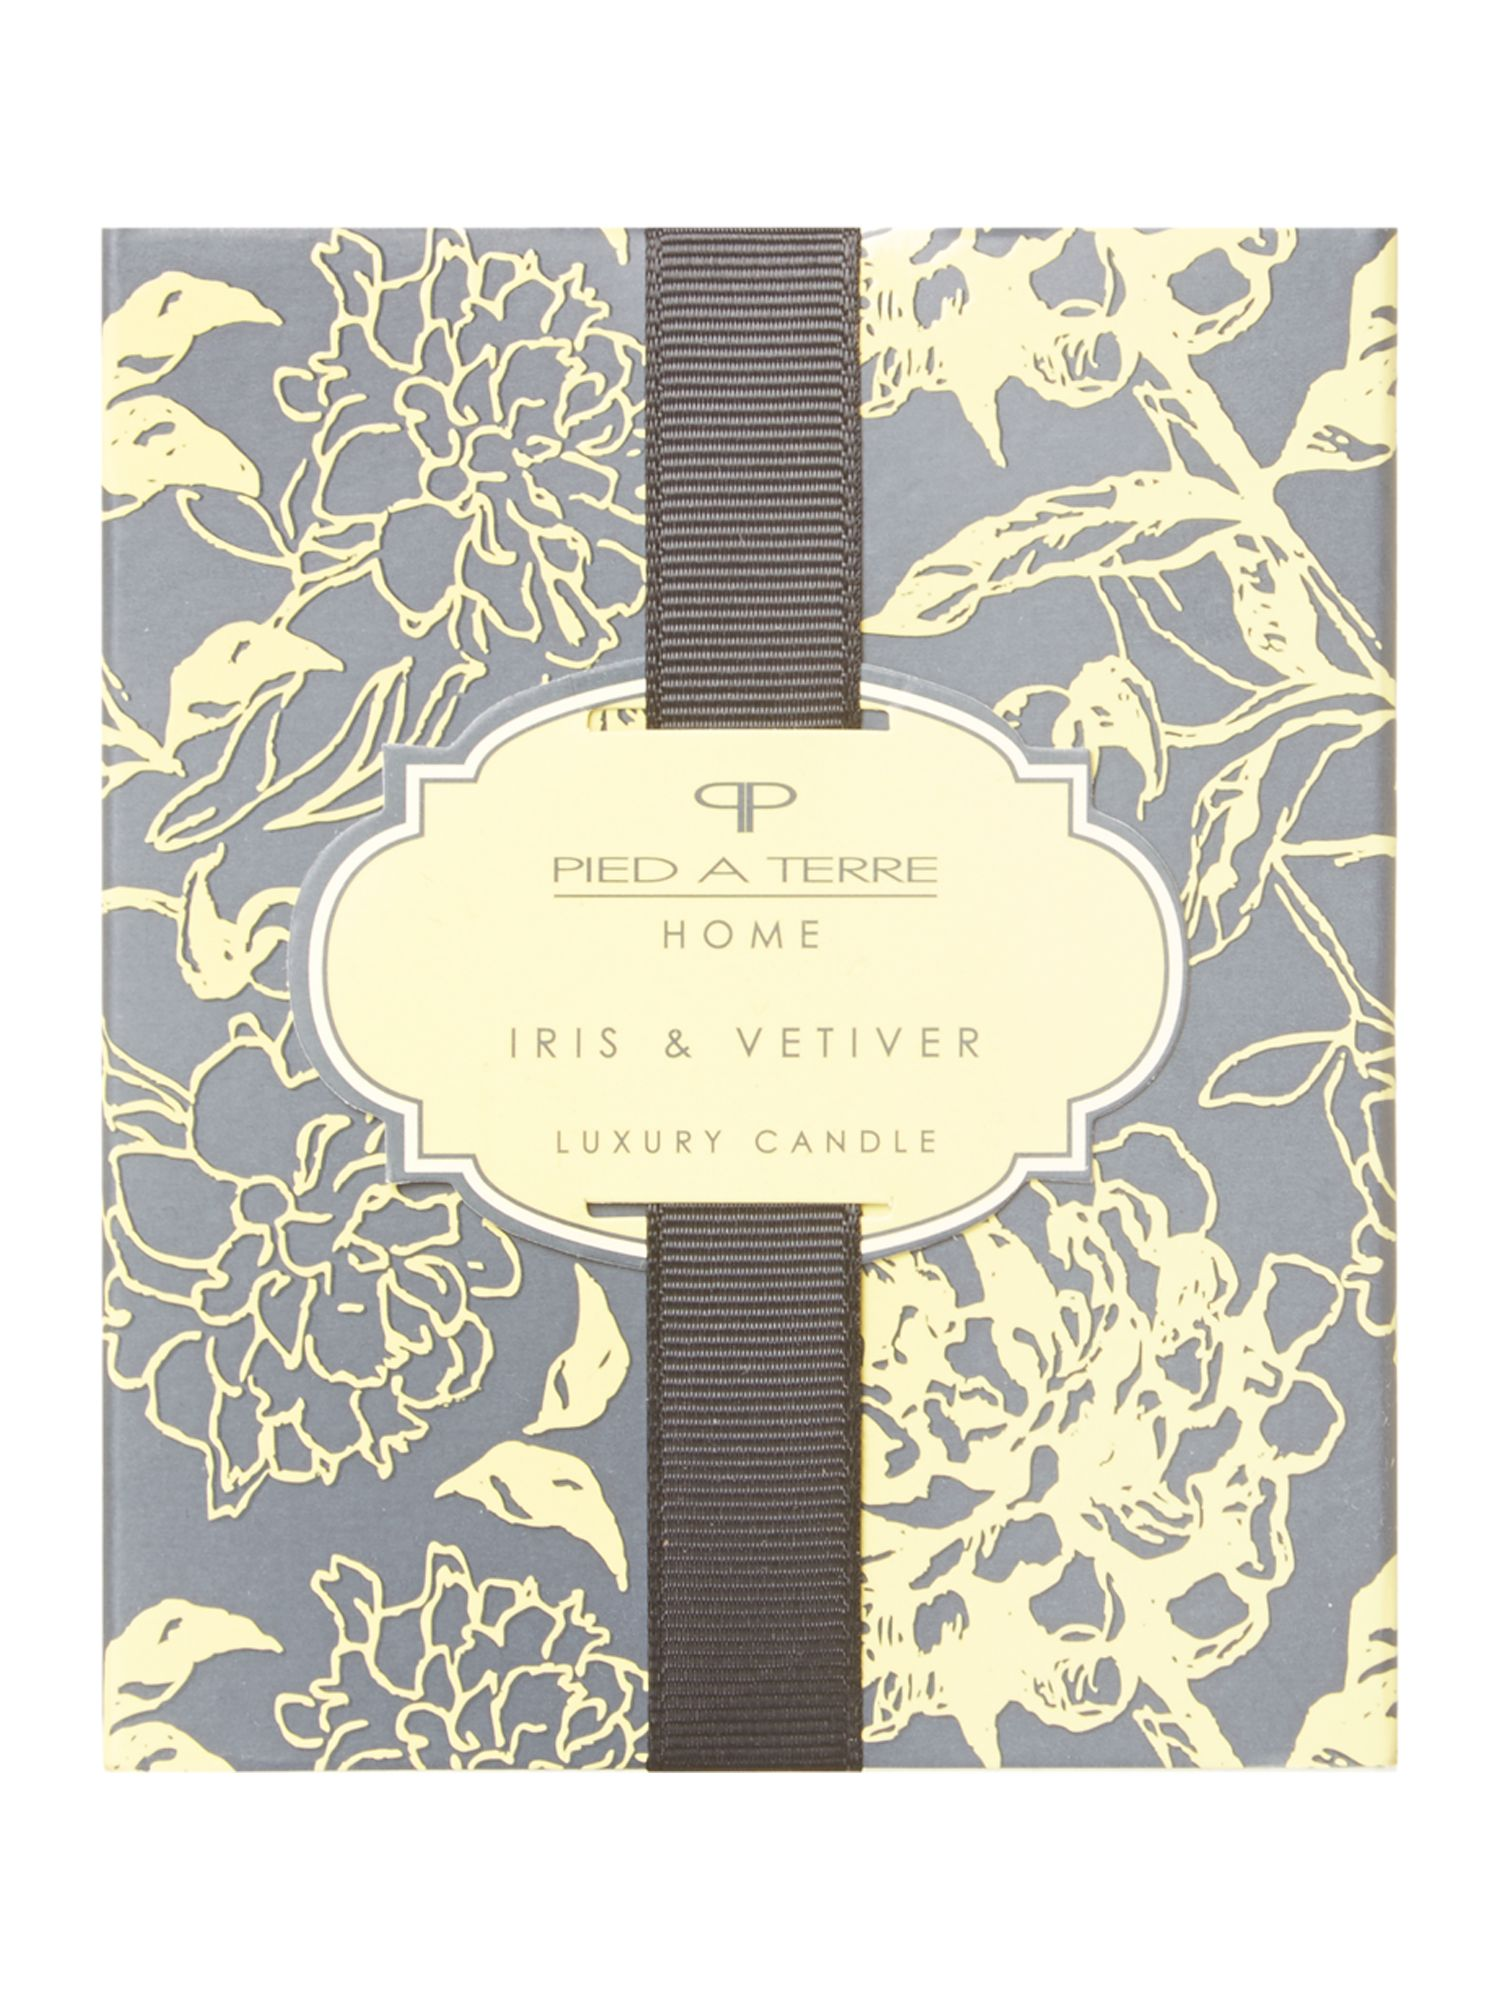 Iris & vetiver boxed single candle